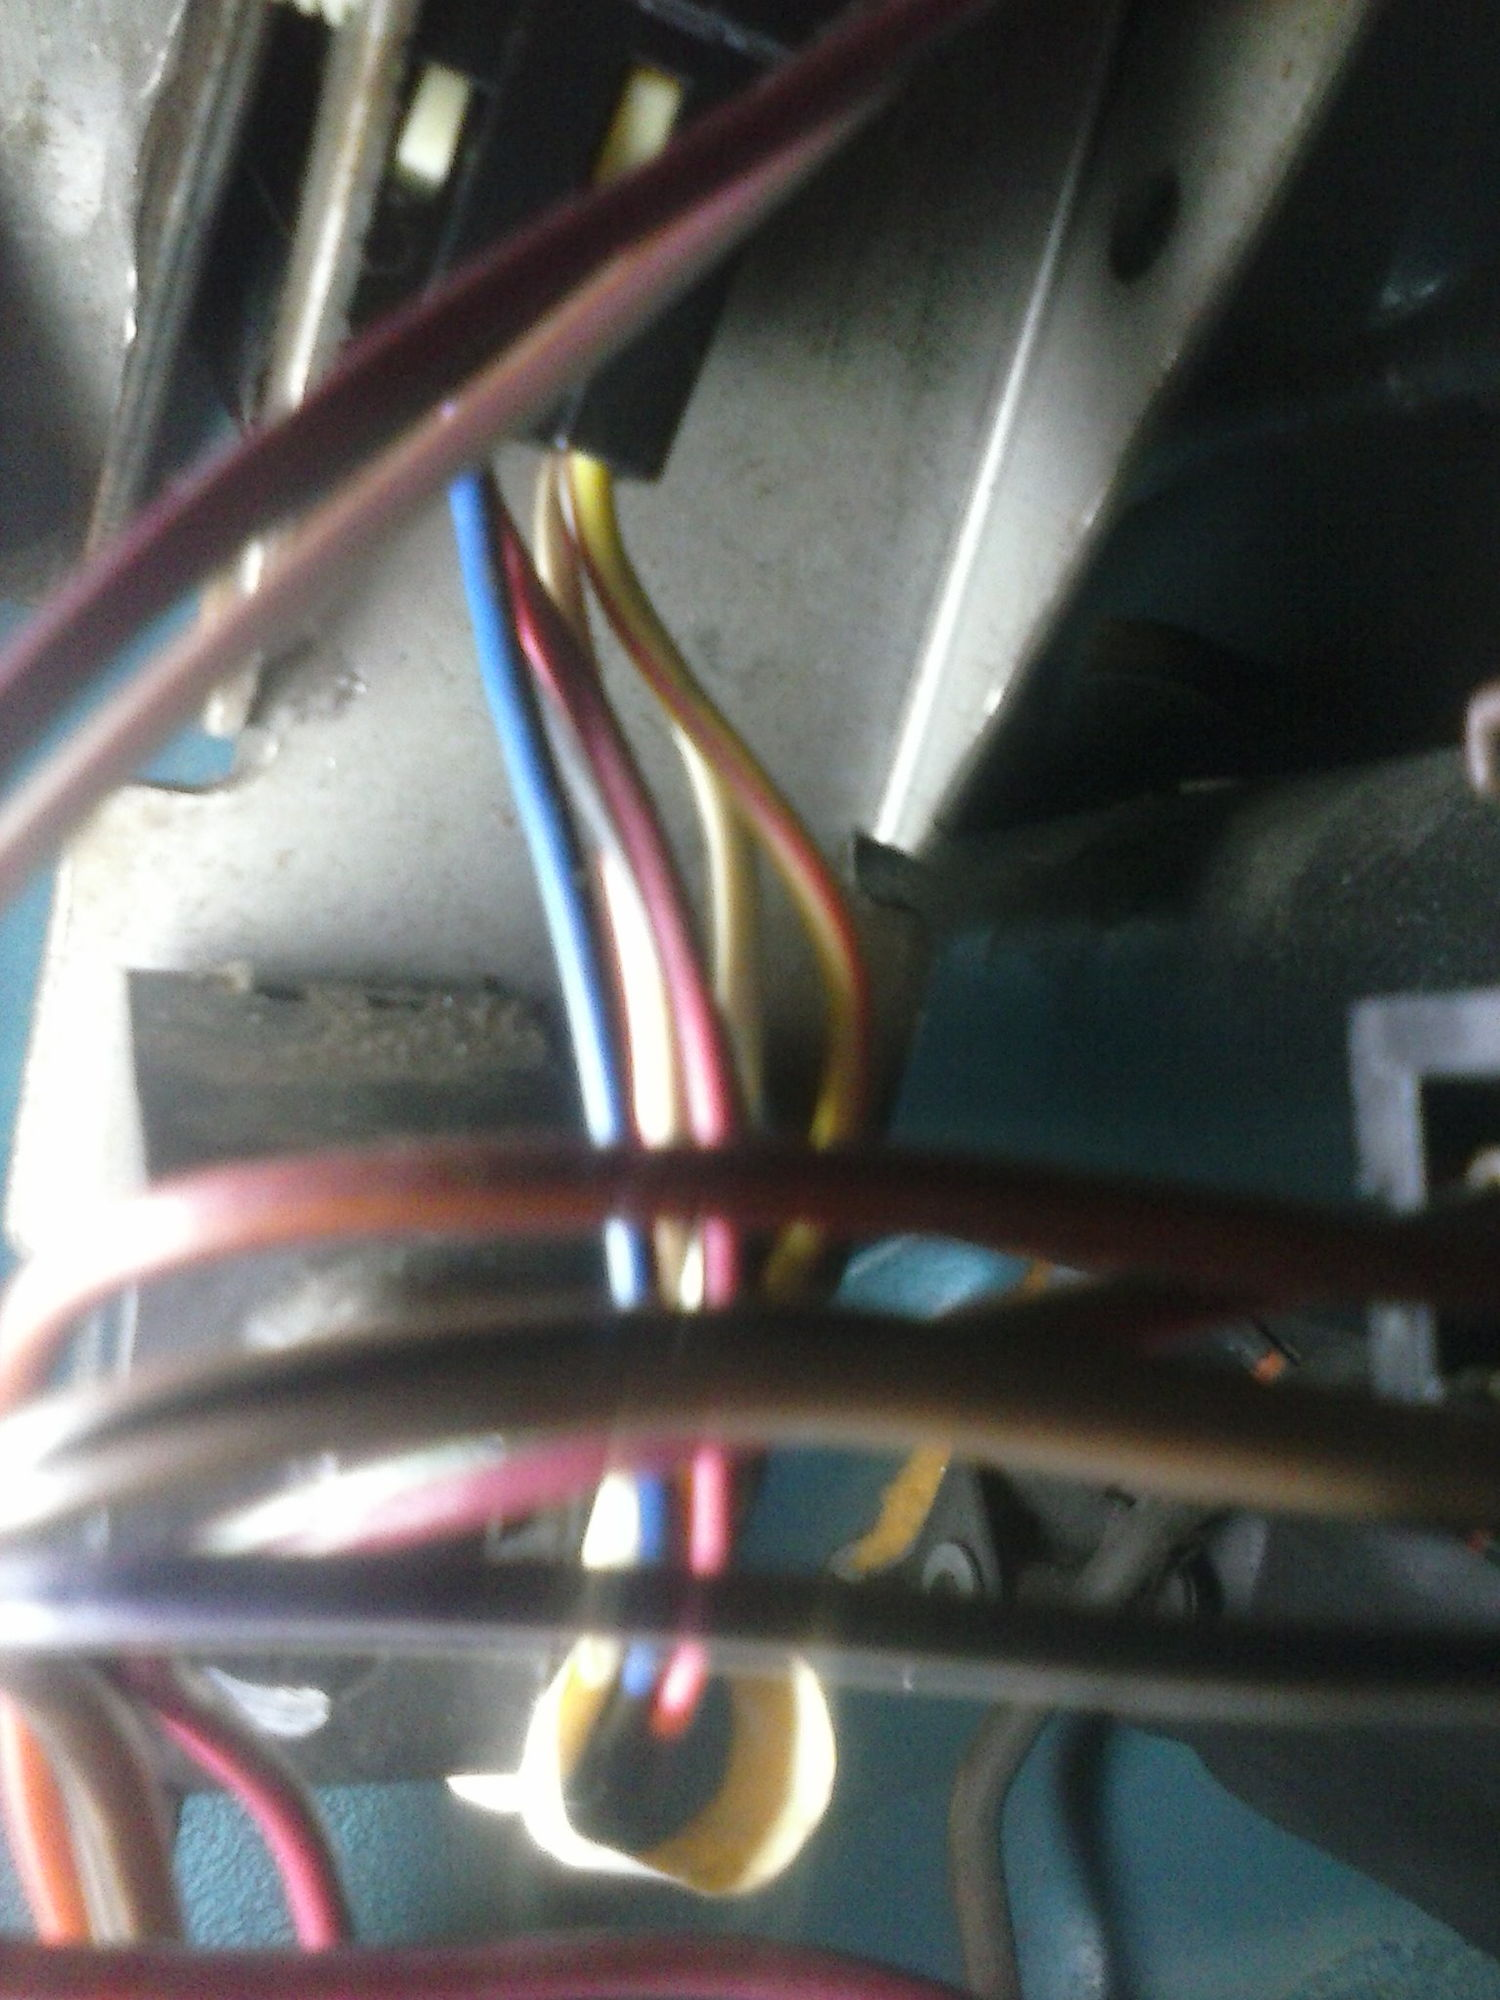 Help Me Identify These Cable Connectors Jeep Cherokee Forum Wire Harness Bundle The Wires Coming Out Brake Light Switch They Should Go Straight Into A Connector And Then Other Rest Of Main